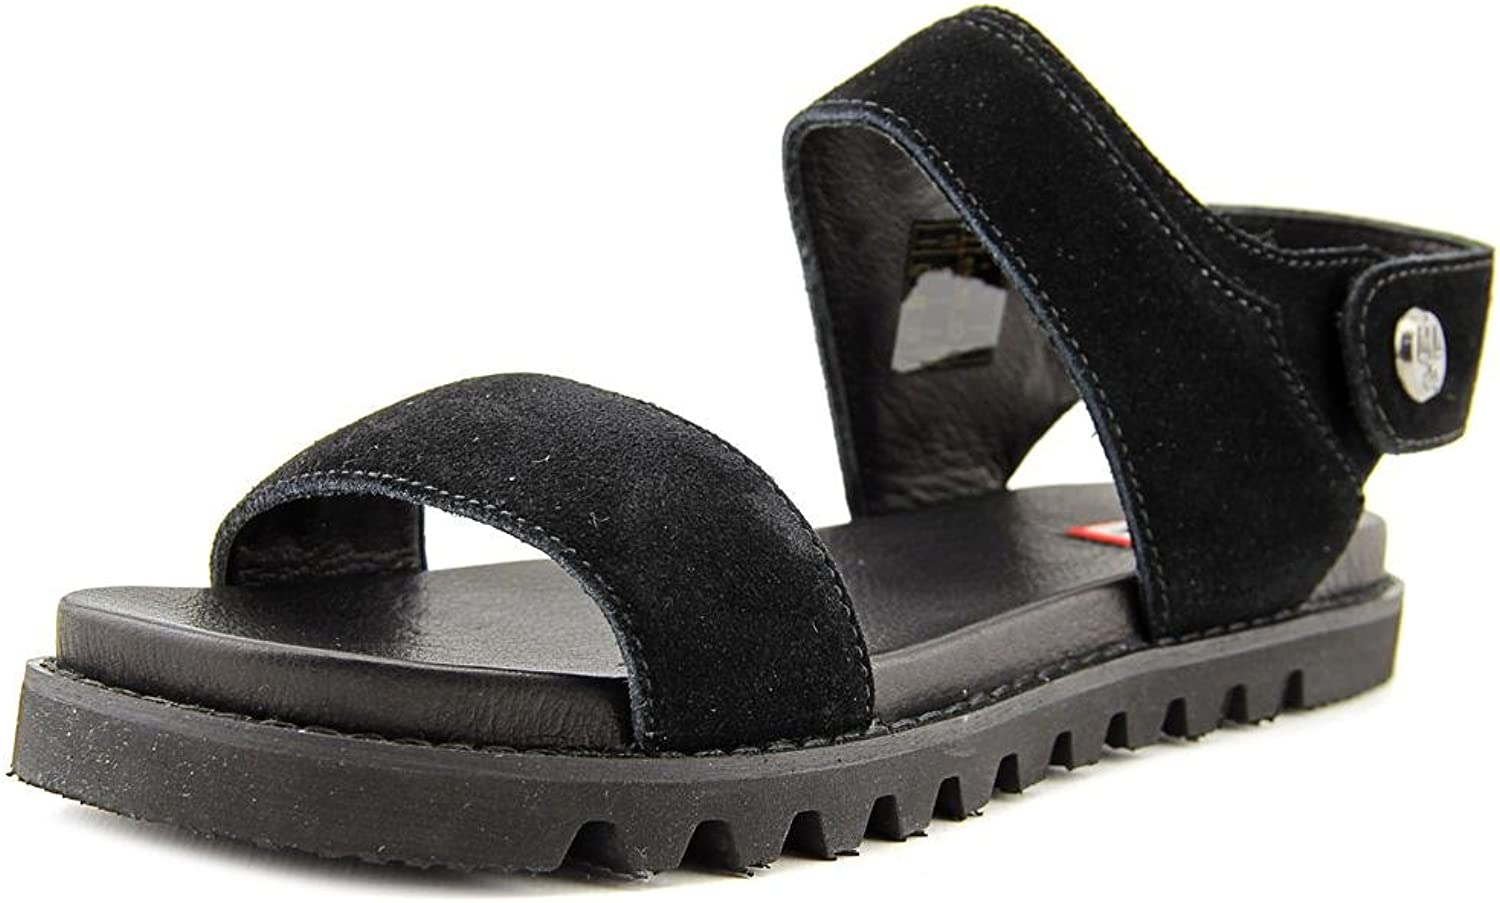 Hunter Womens Org Leather Sandal Leather Open Toe Casual Slingback Sandals